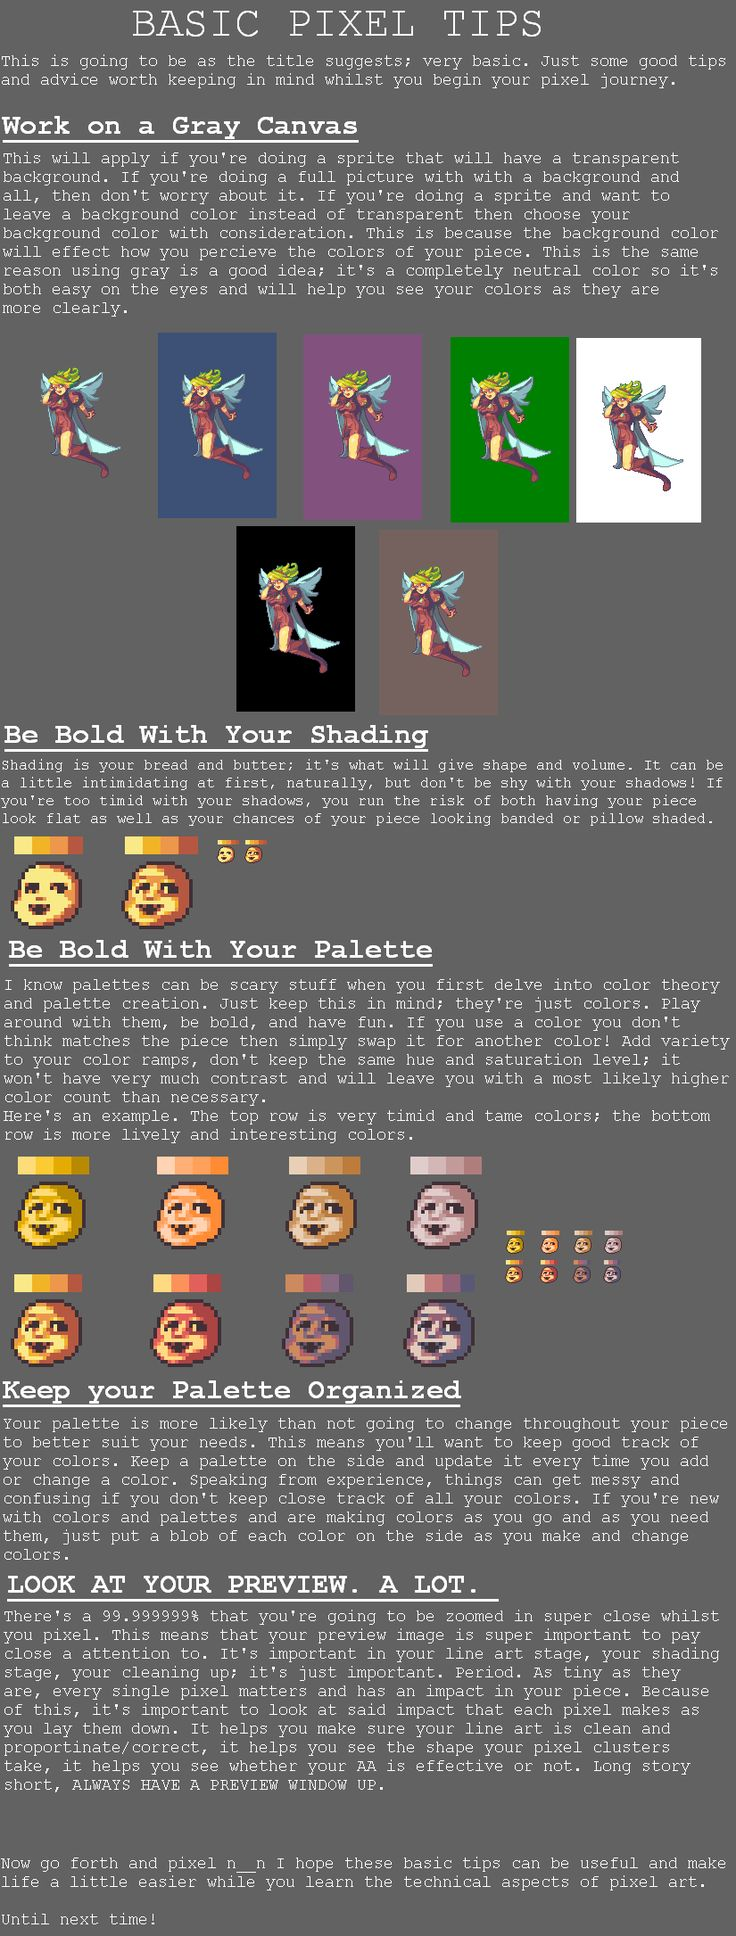 Pixel Basics By Rhlpixelsiantart On @deviantart